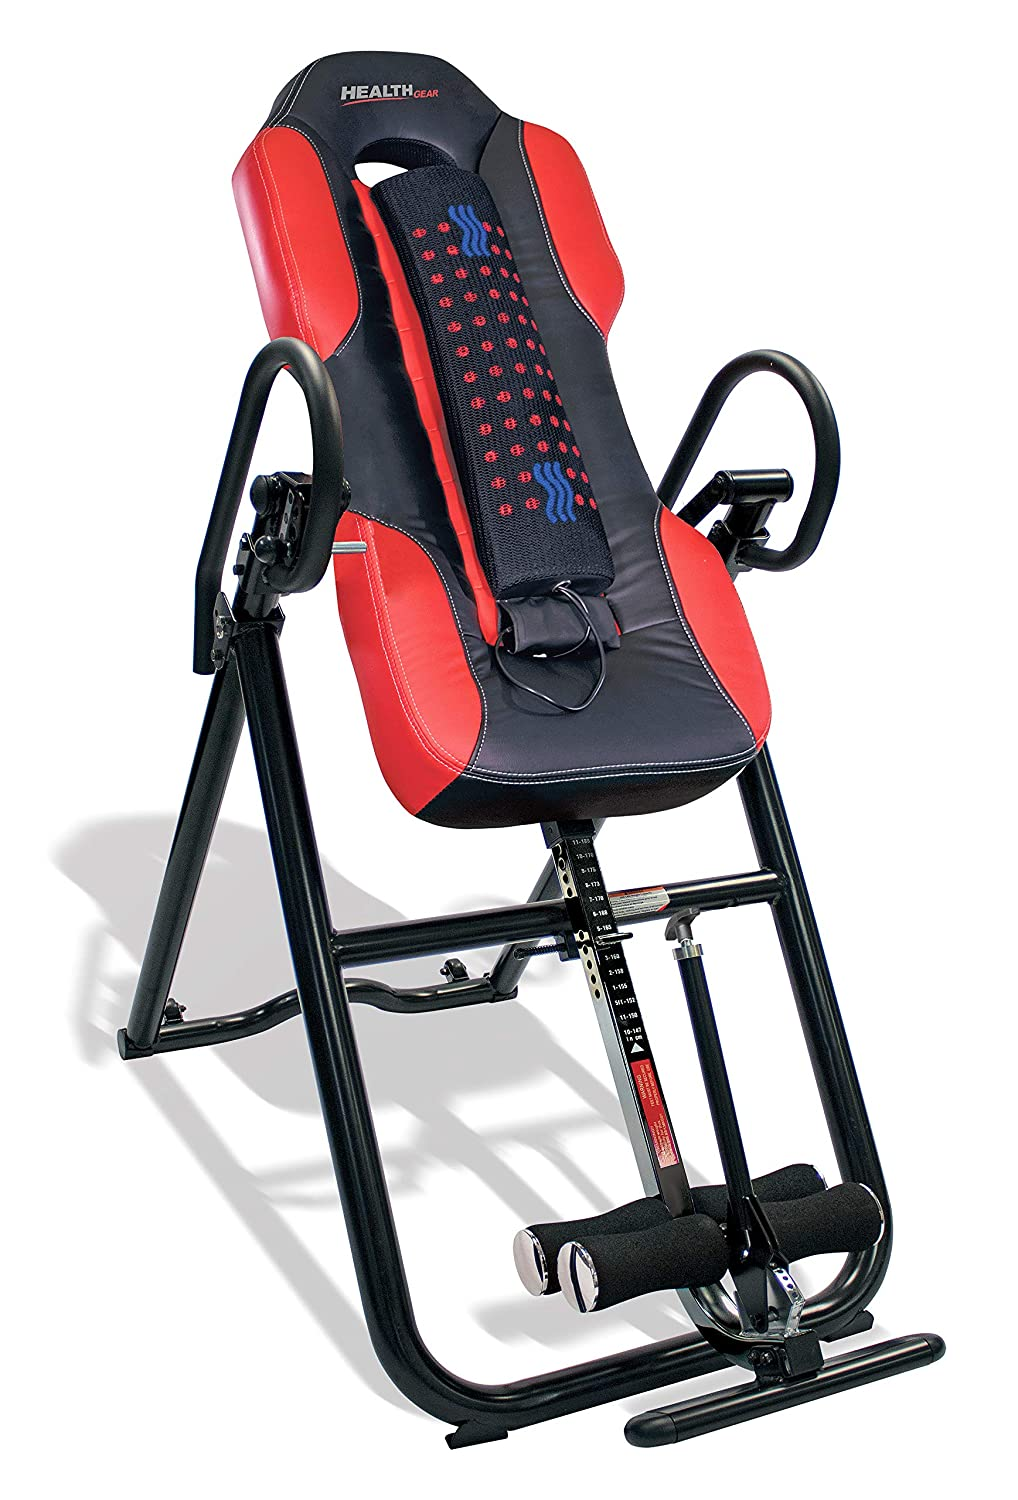 Health Gear ITM5500 Advanced Technology Inversion Table with Vibro Massage Heat – Heavy Duty up to 300 lbs.